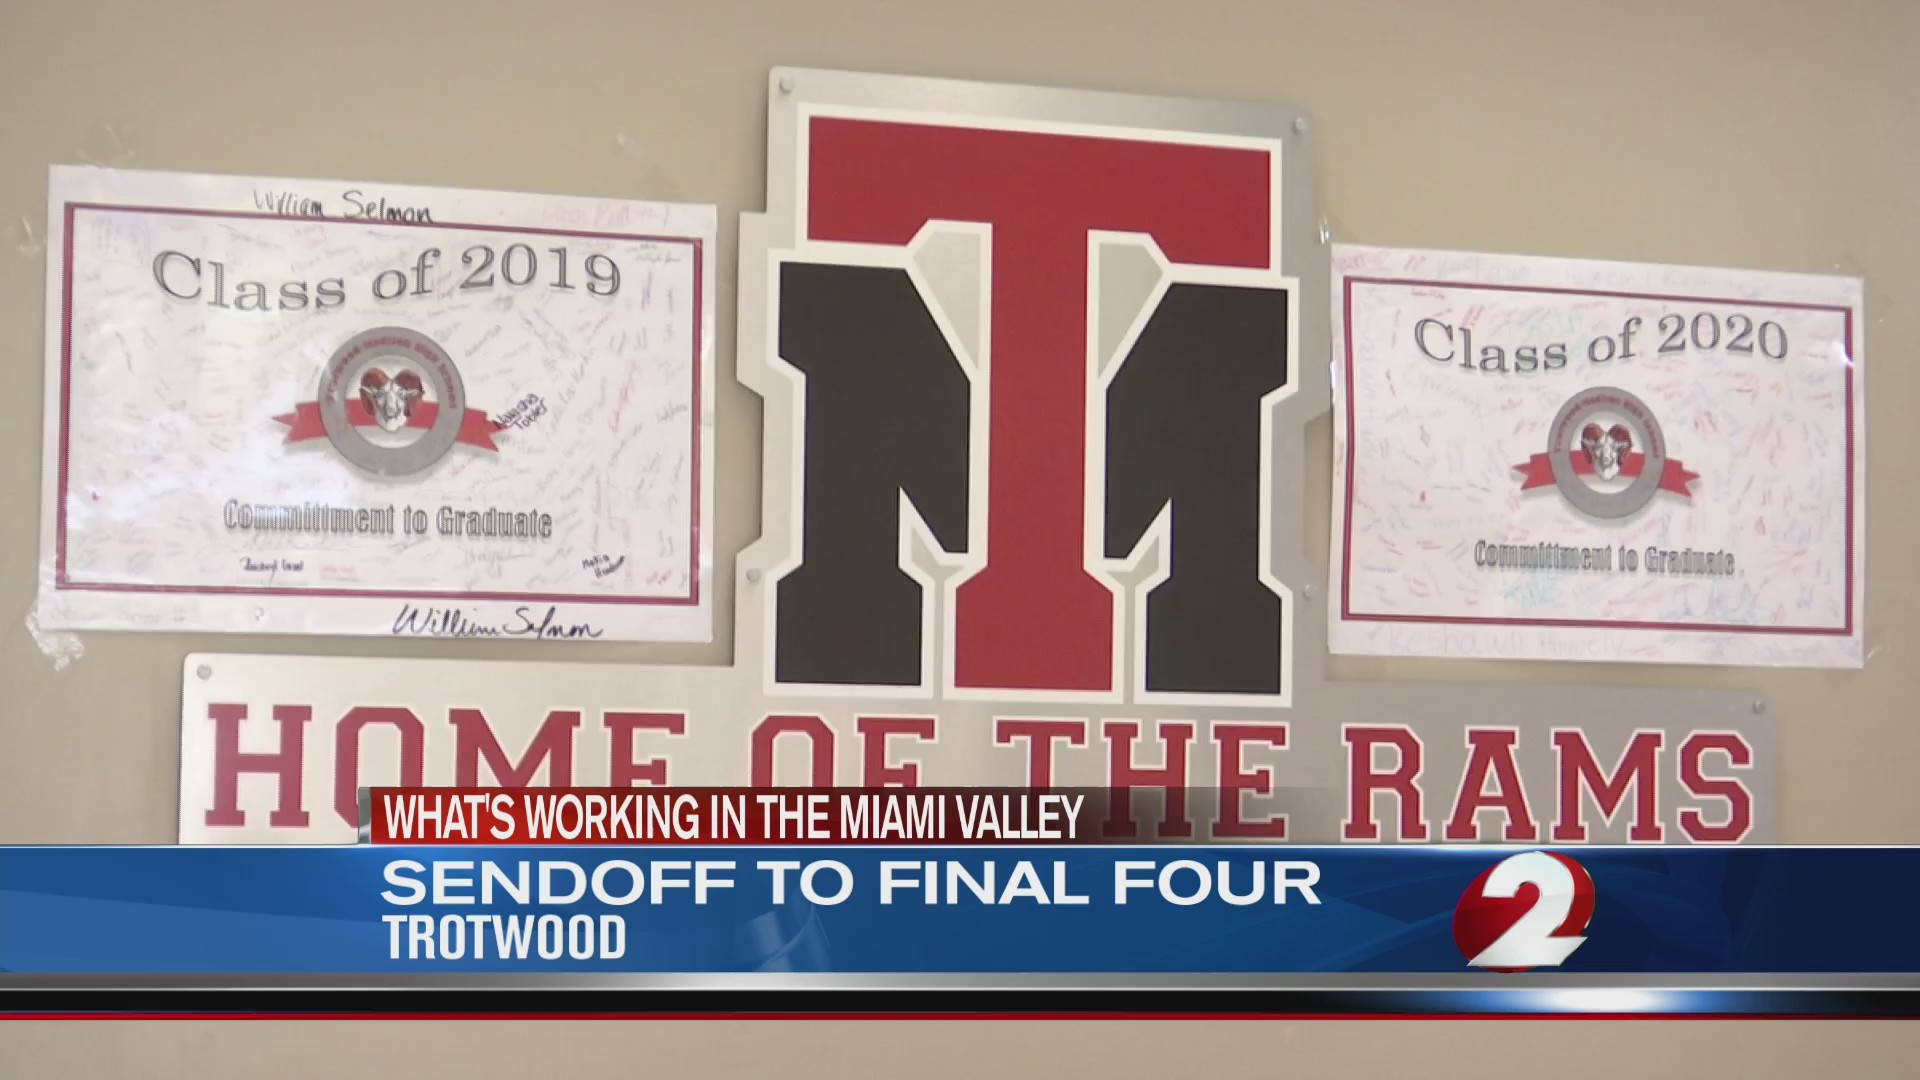 Trotwood sendoff to Final Four